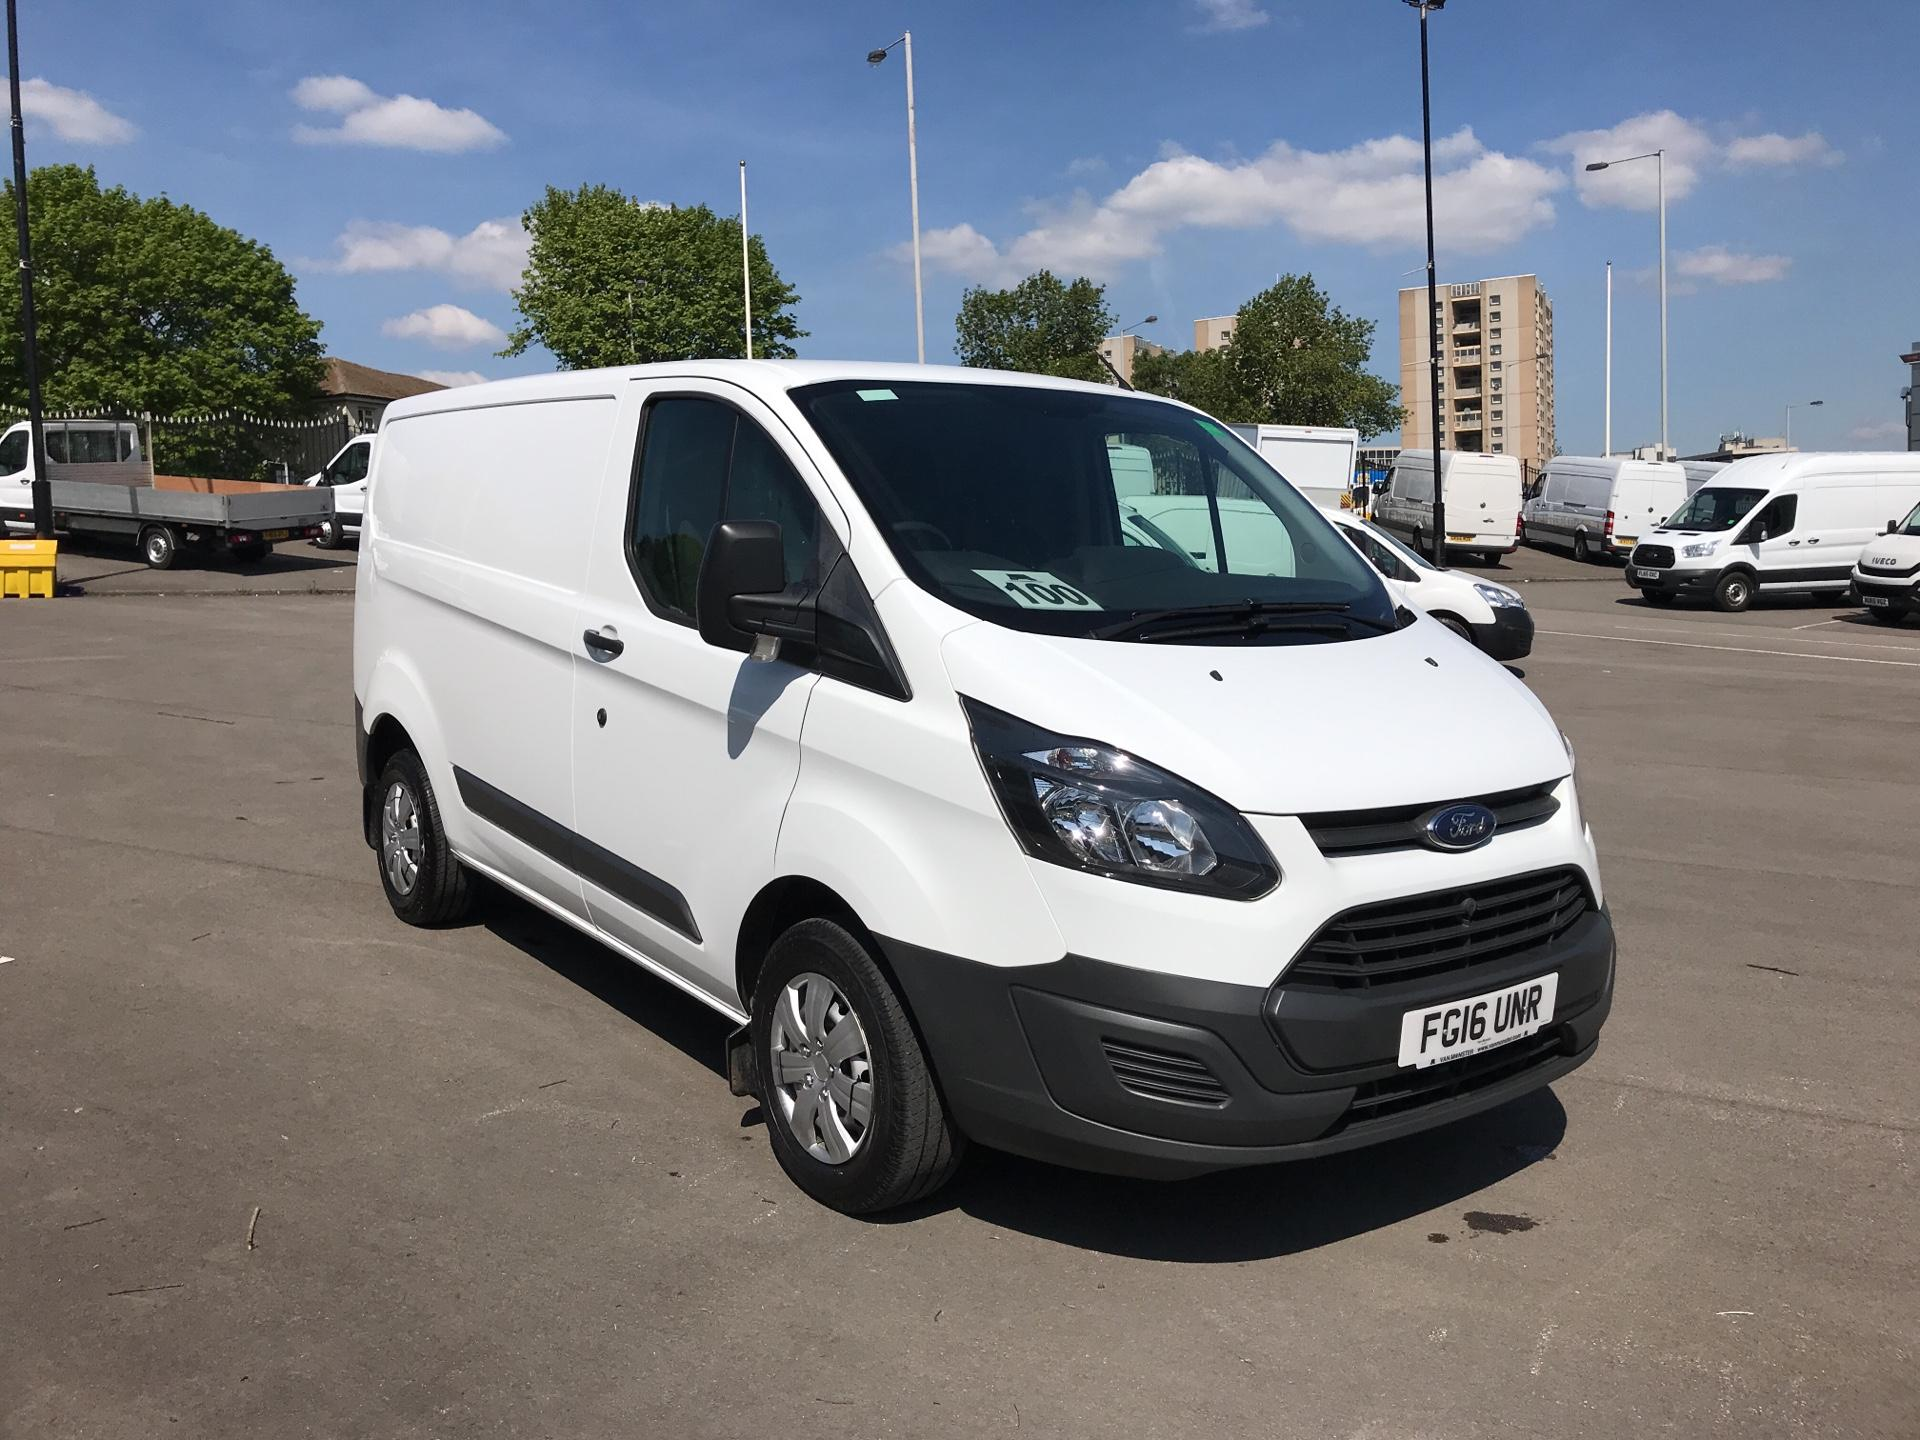 2016 Ford Transit Custom 2.2 Tdci 100Ps Low Roof Van (FG16UNR)